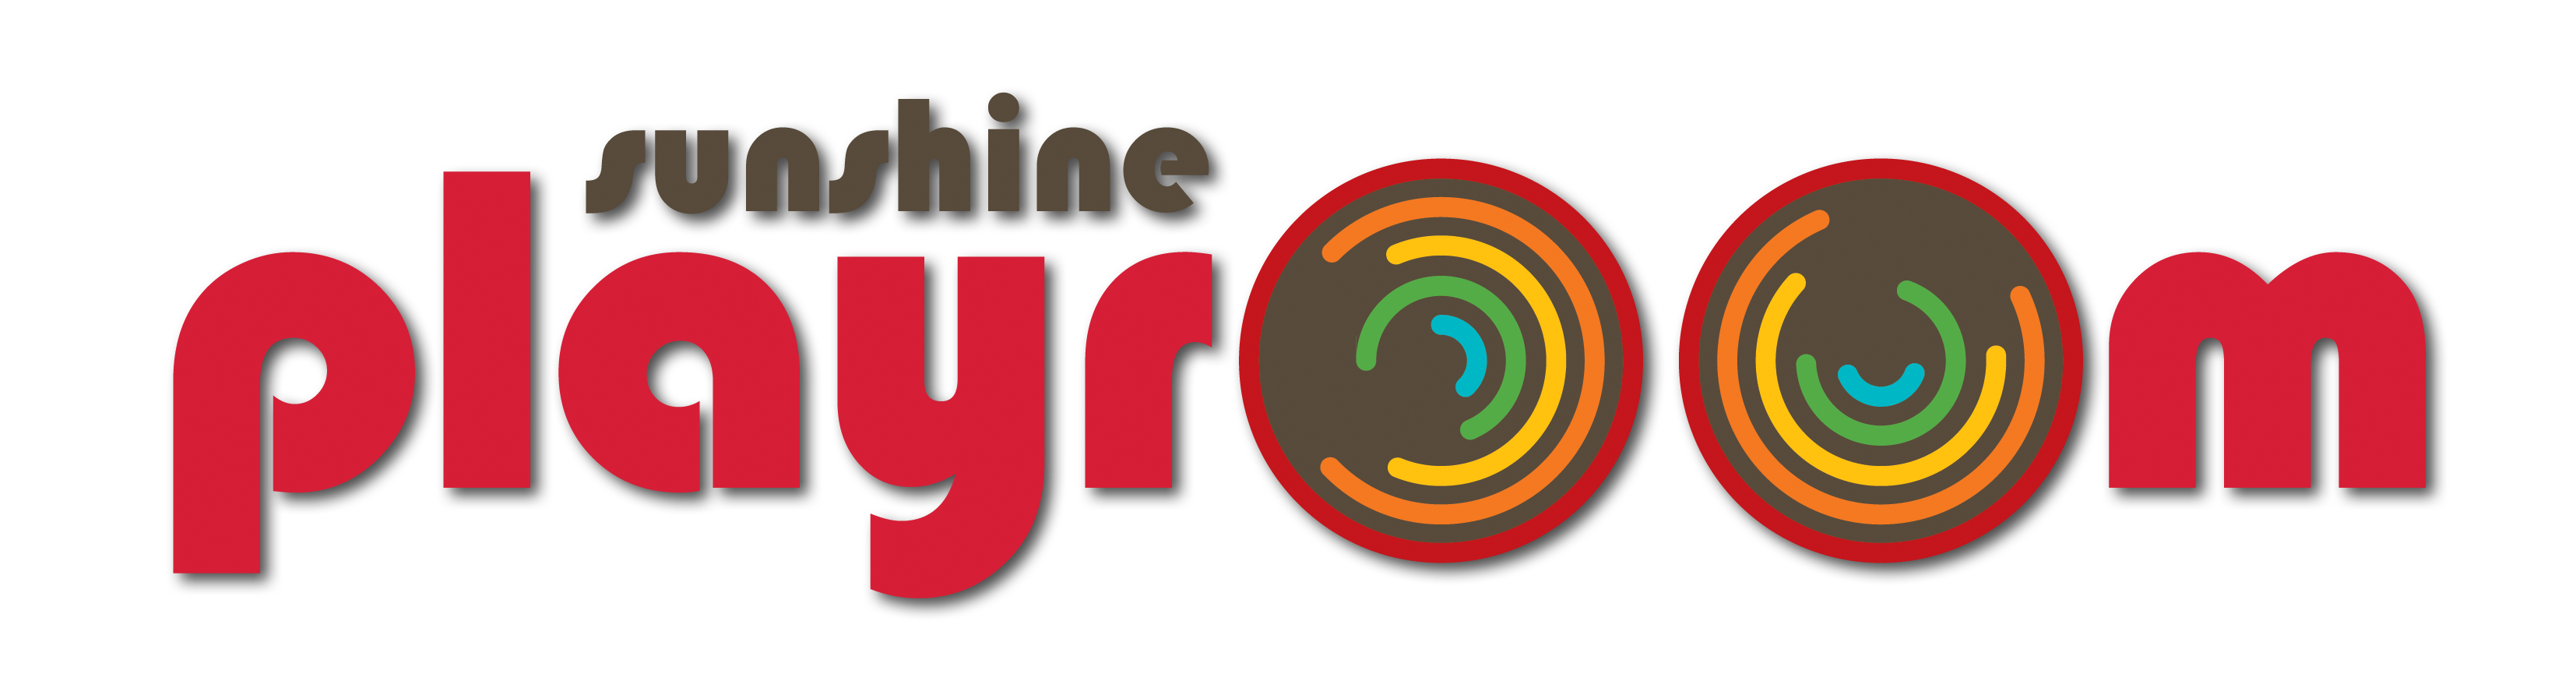 Sunshine Playroom Logo